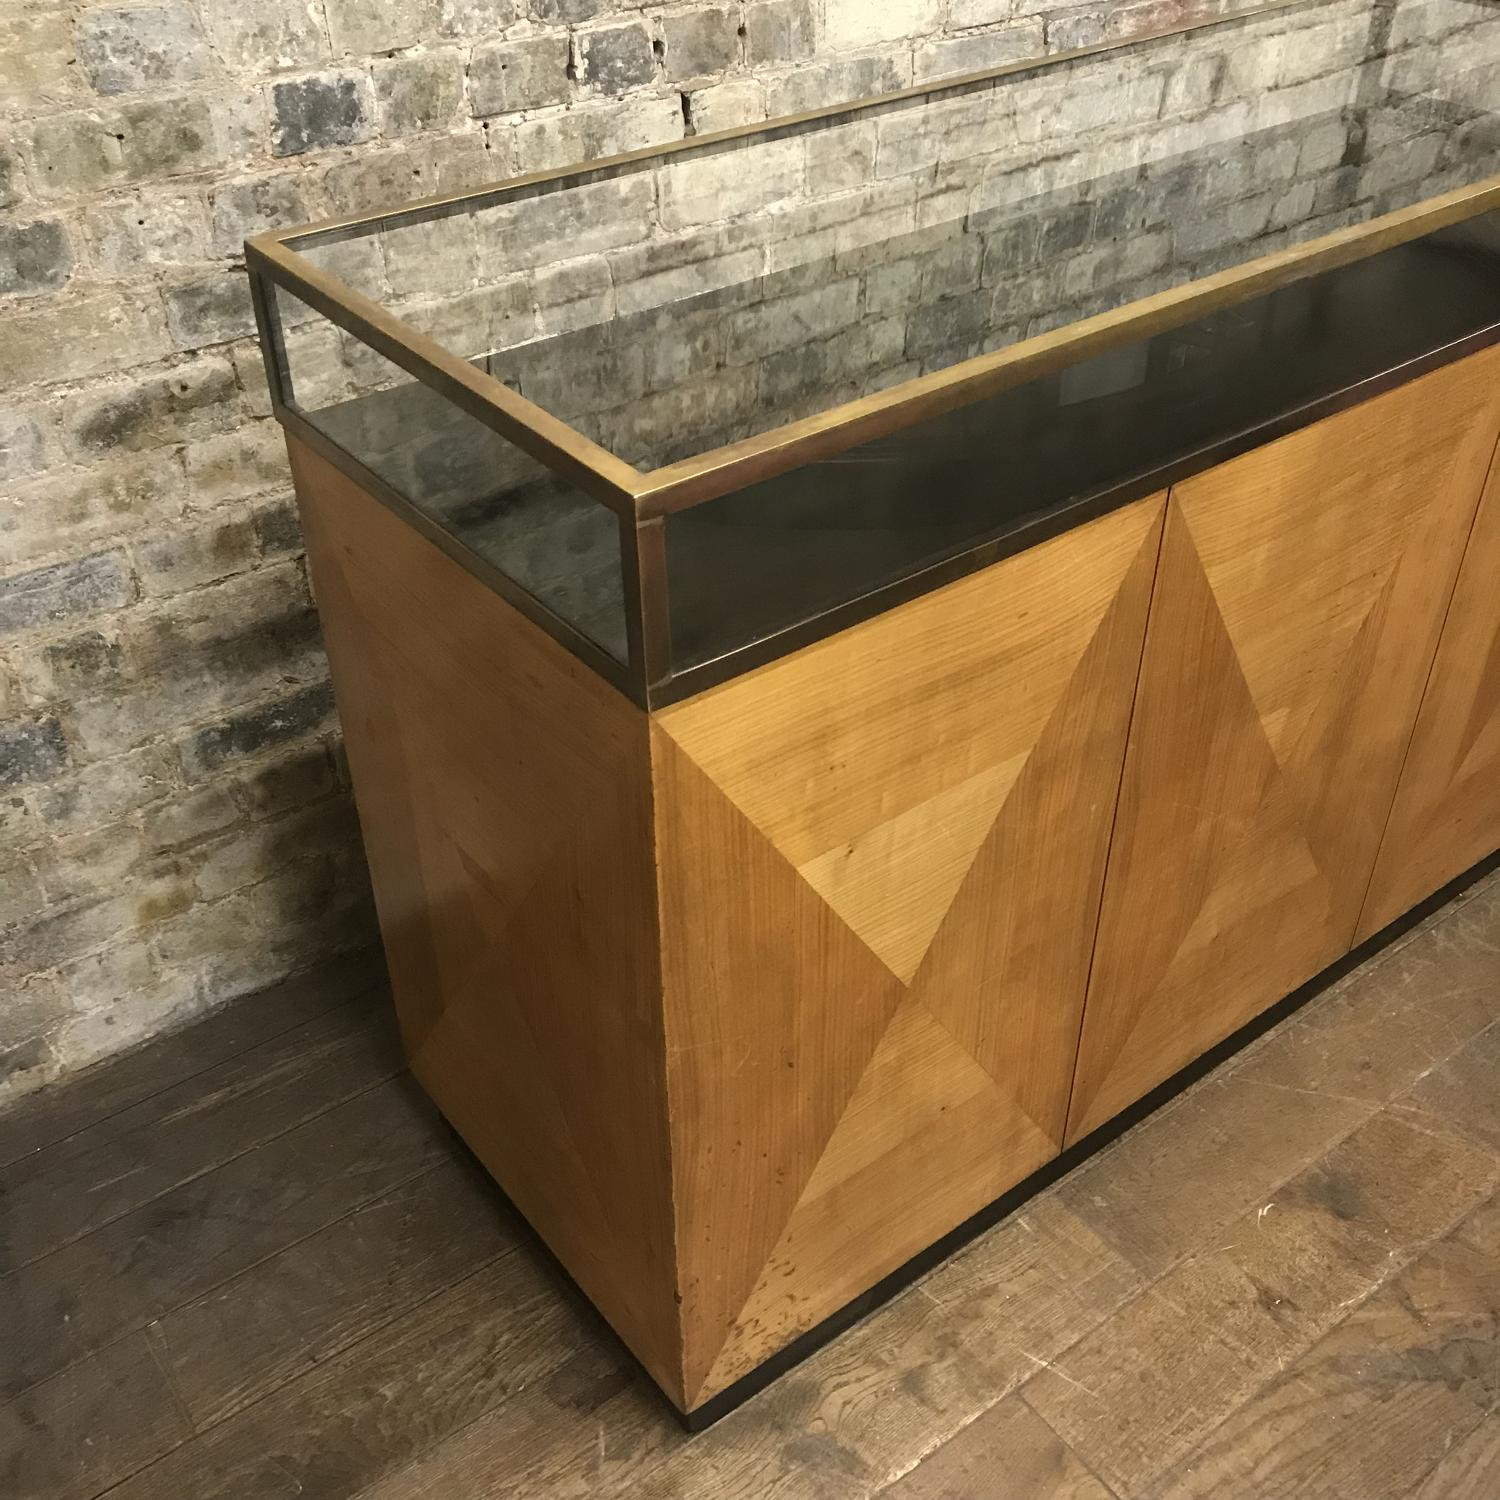 Vintage Art Deco Brass jewellery shop counter